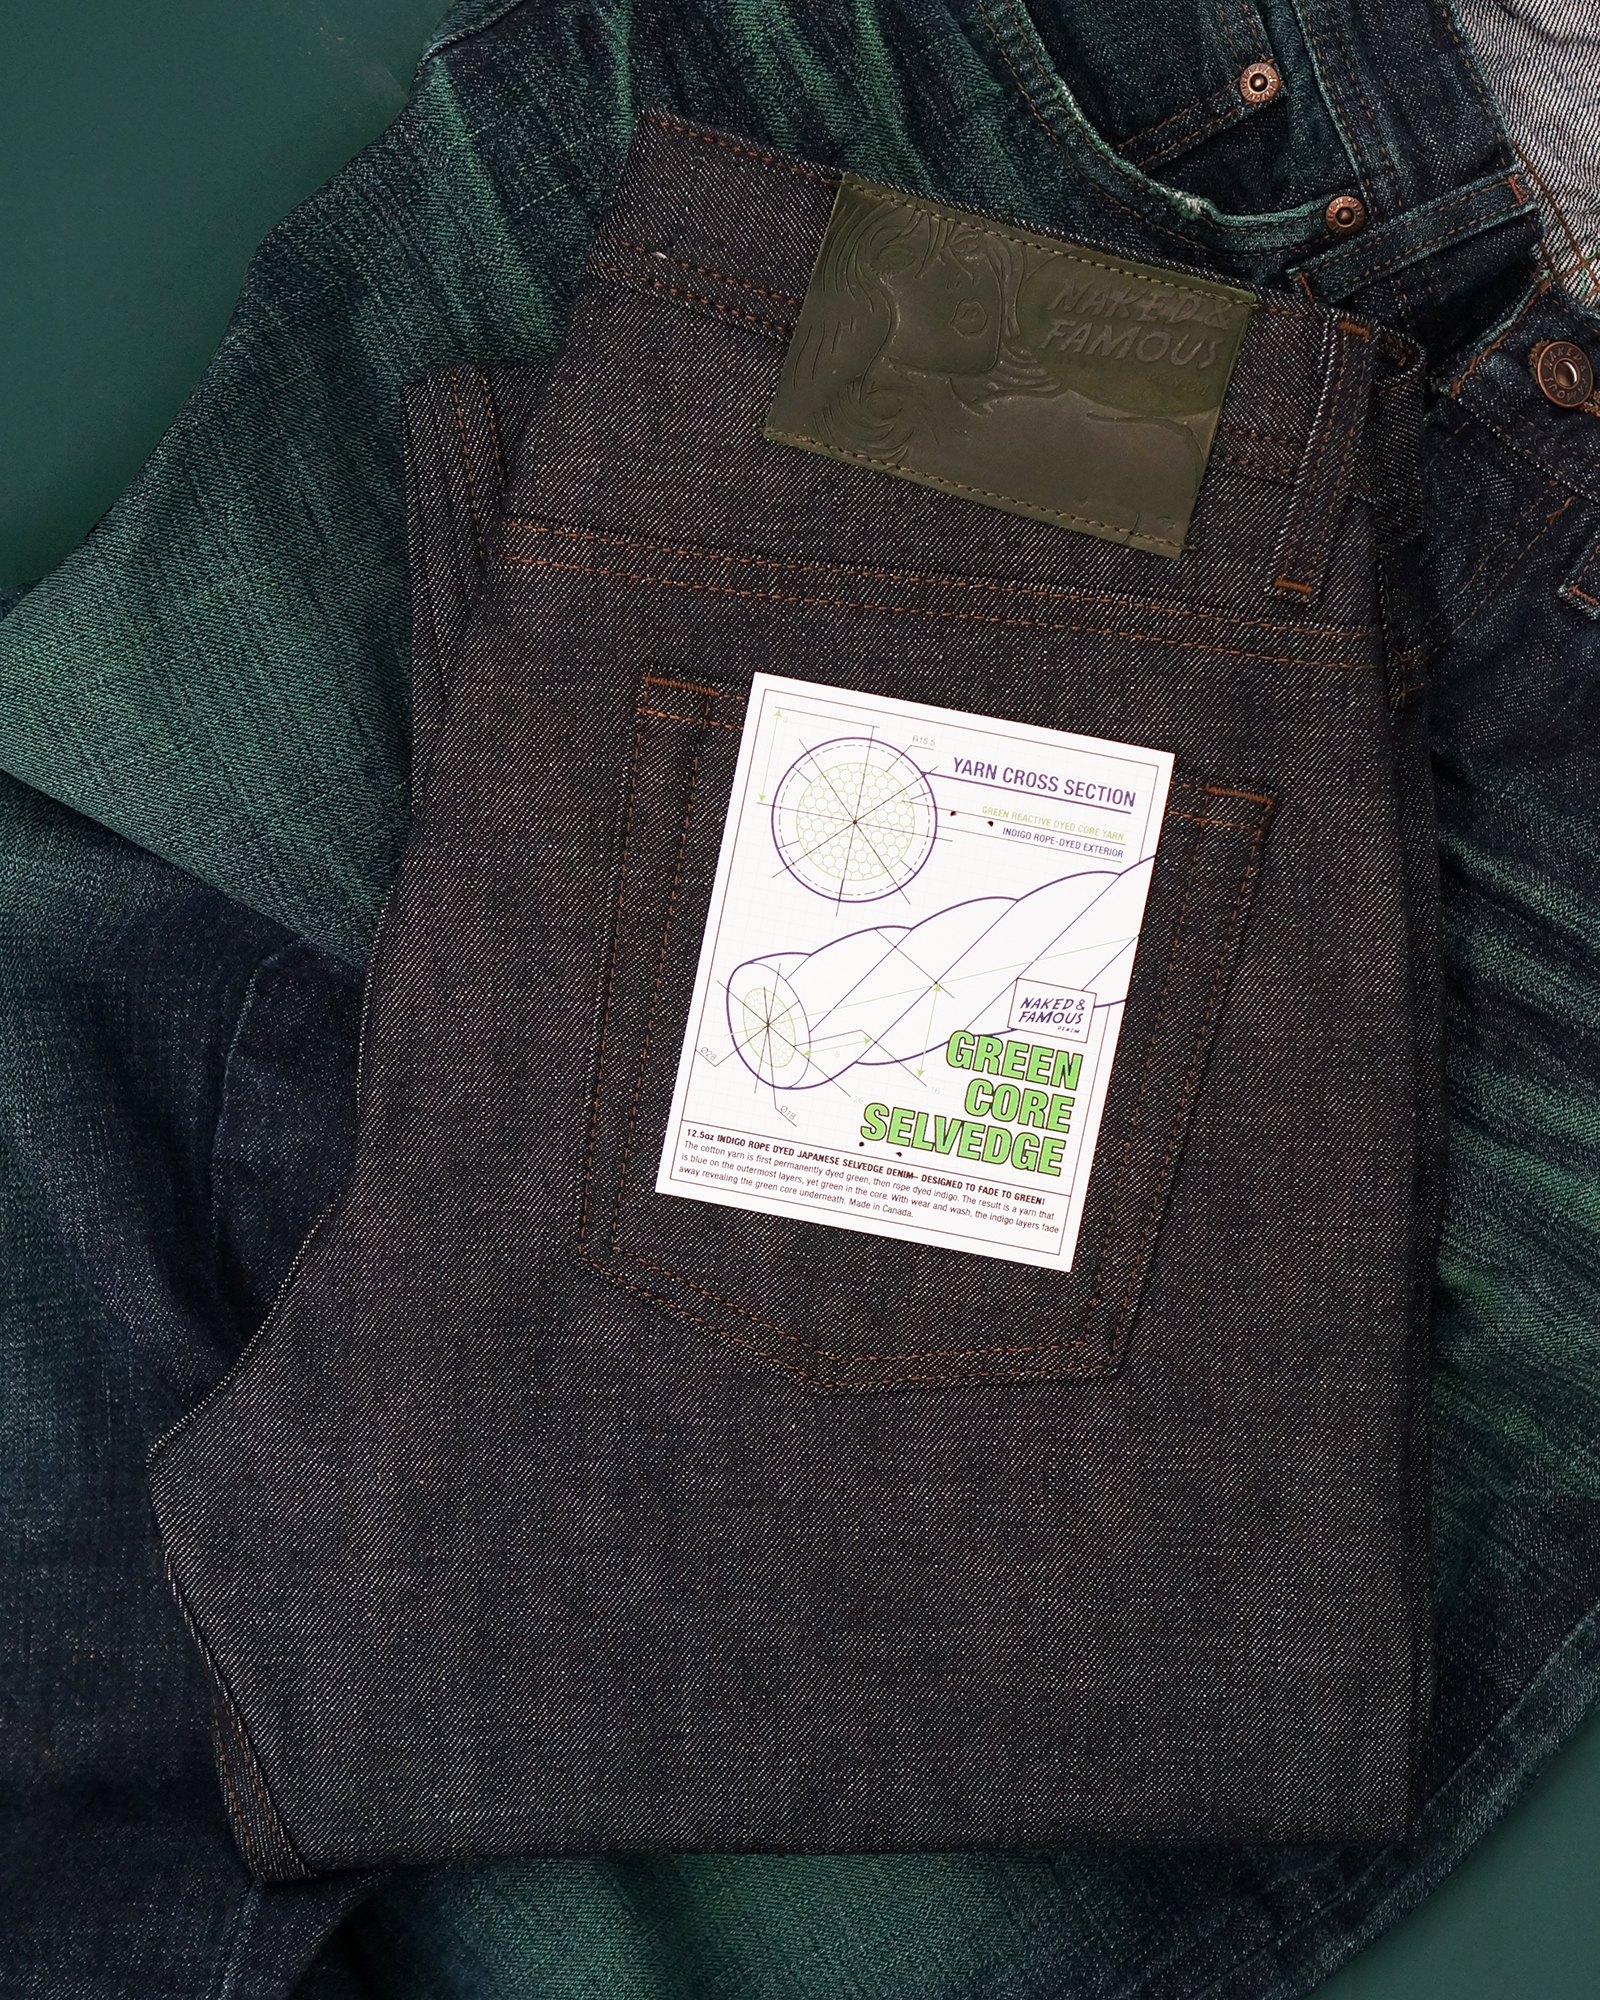 Green Core Selvedge jeans folded